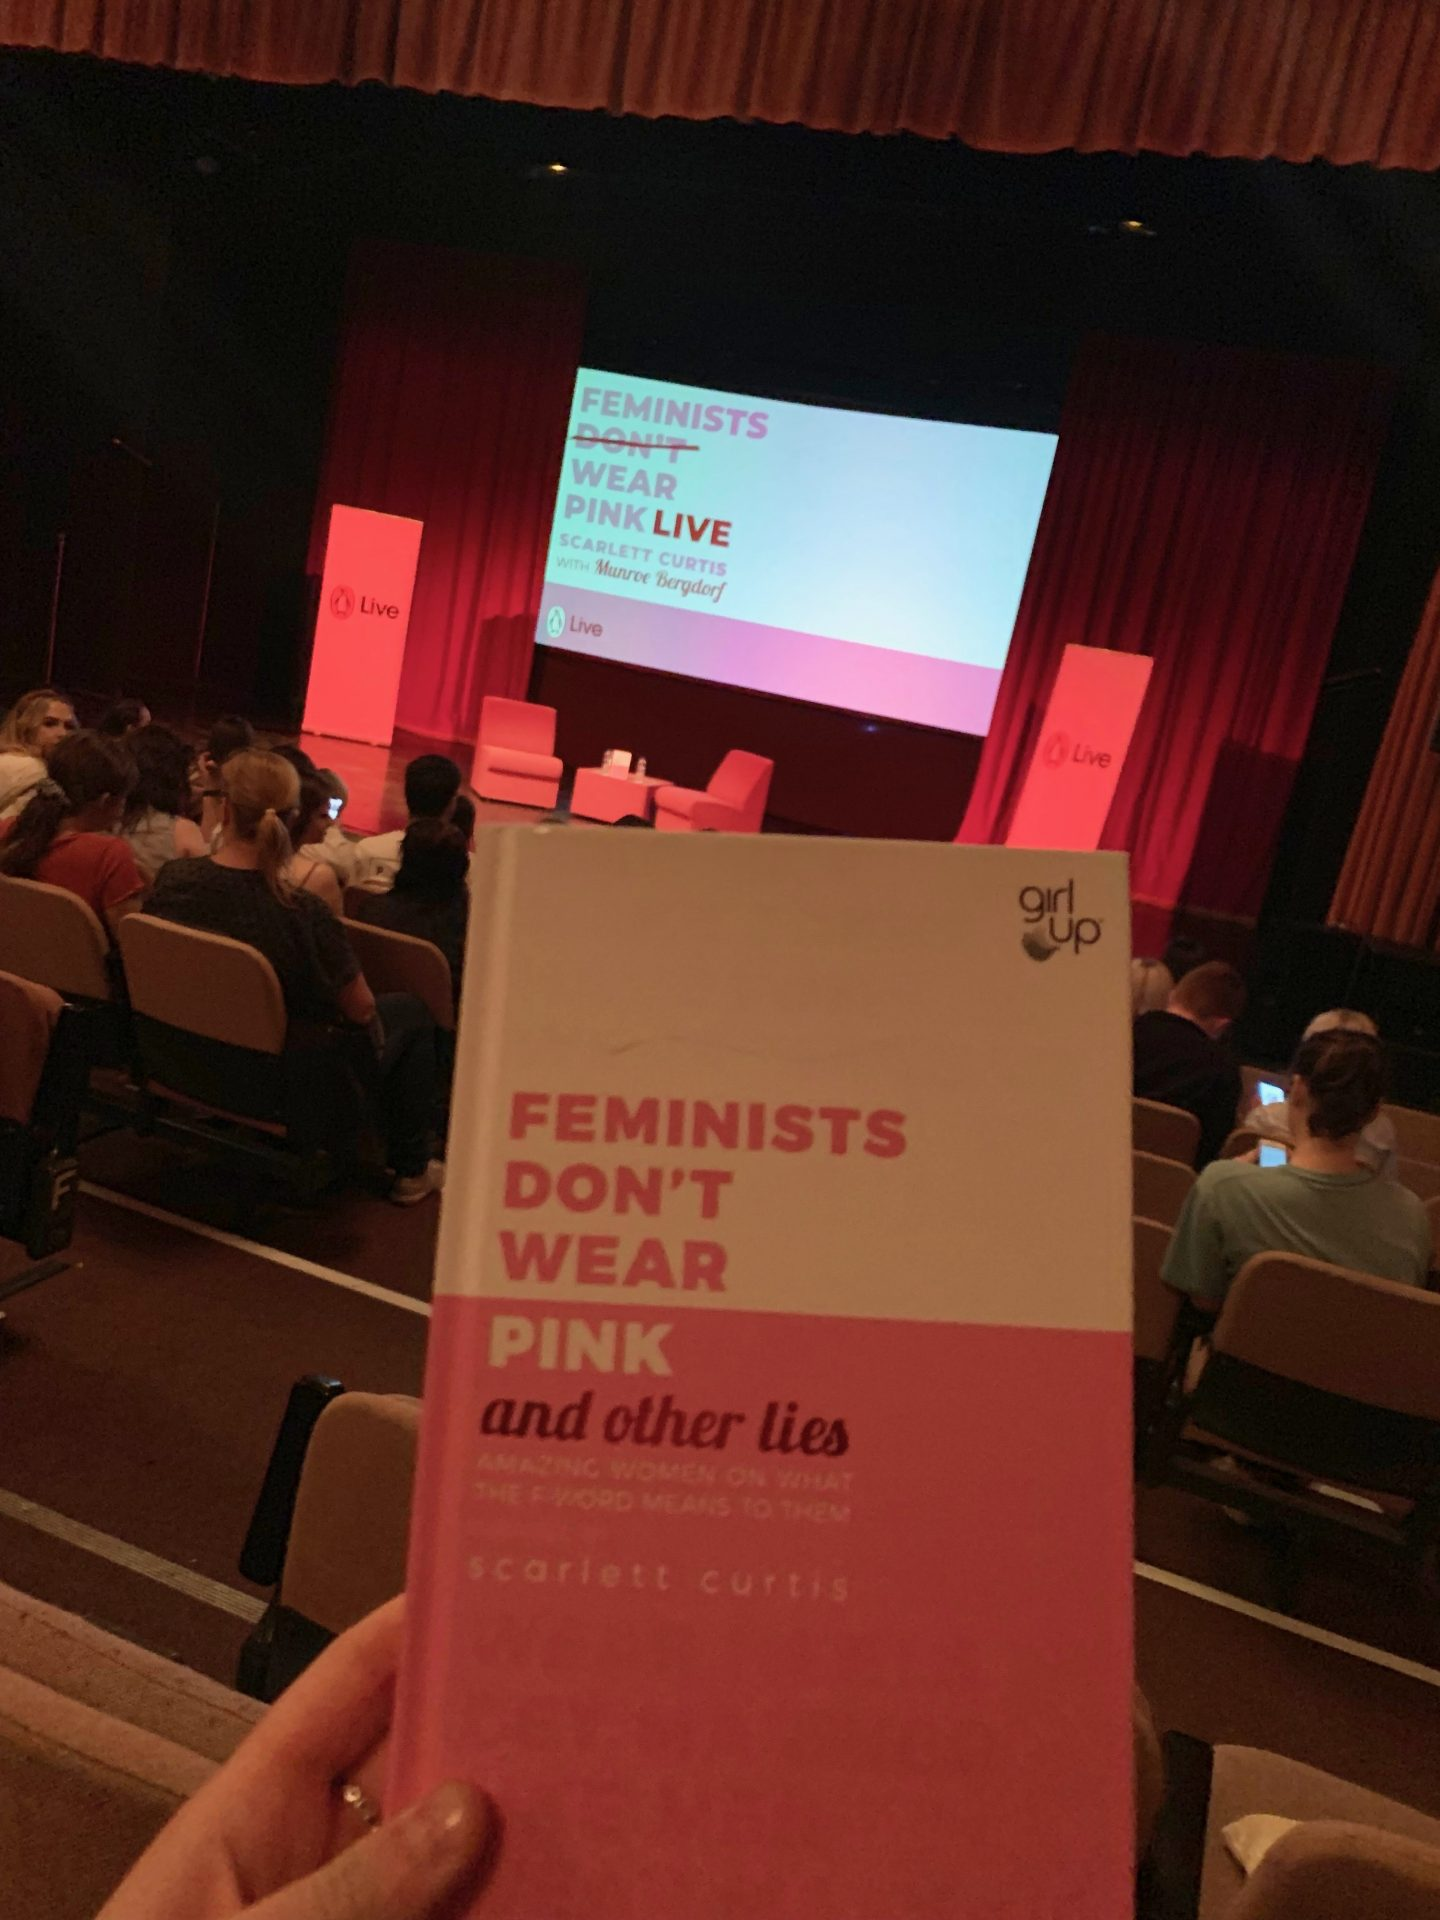 Feminists don't wear pink book